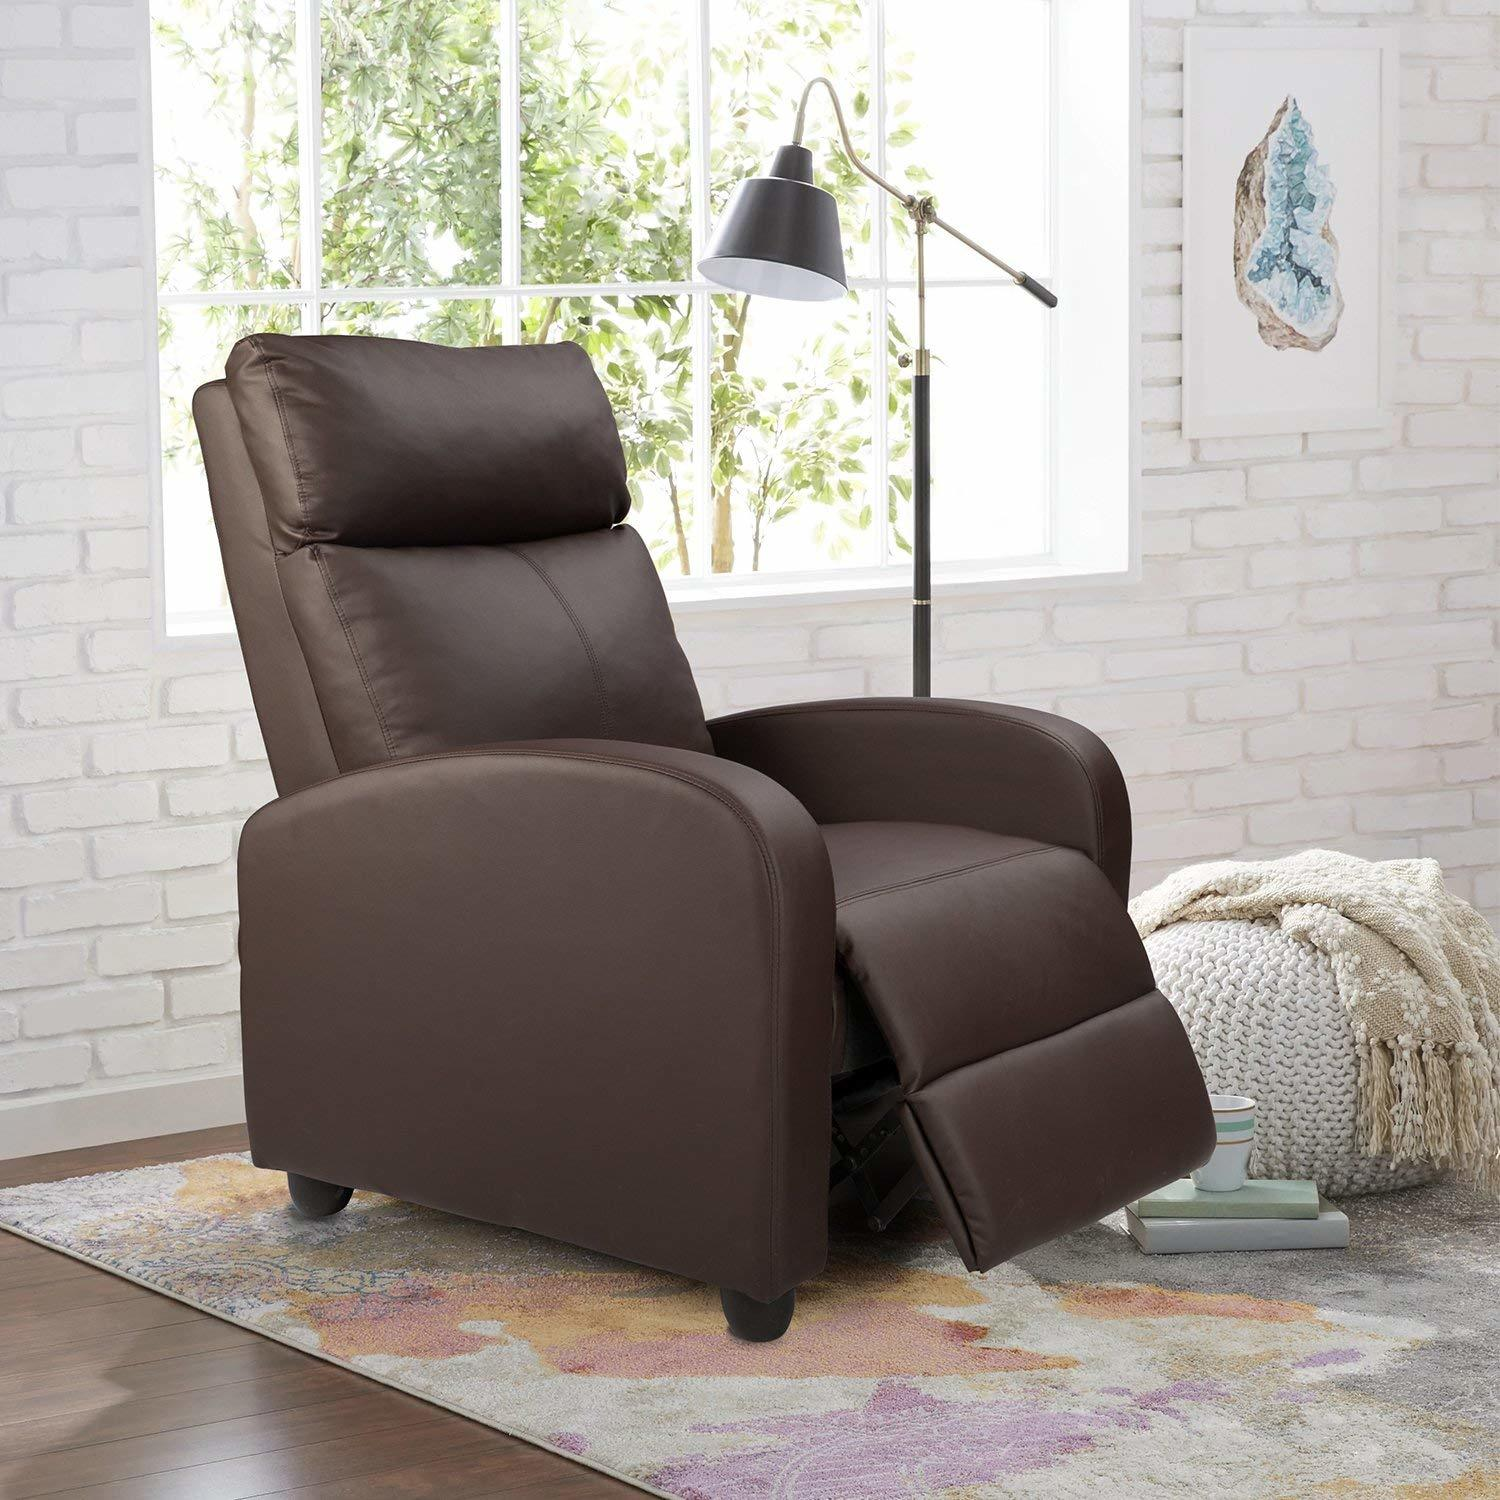 Home Chair: Best Recliners – Reviews And Comparisons